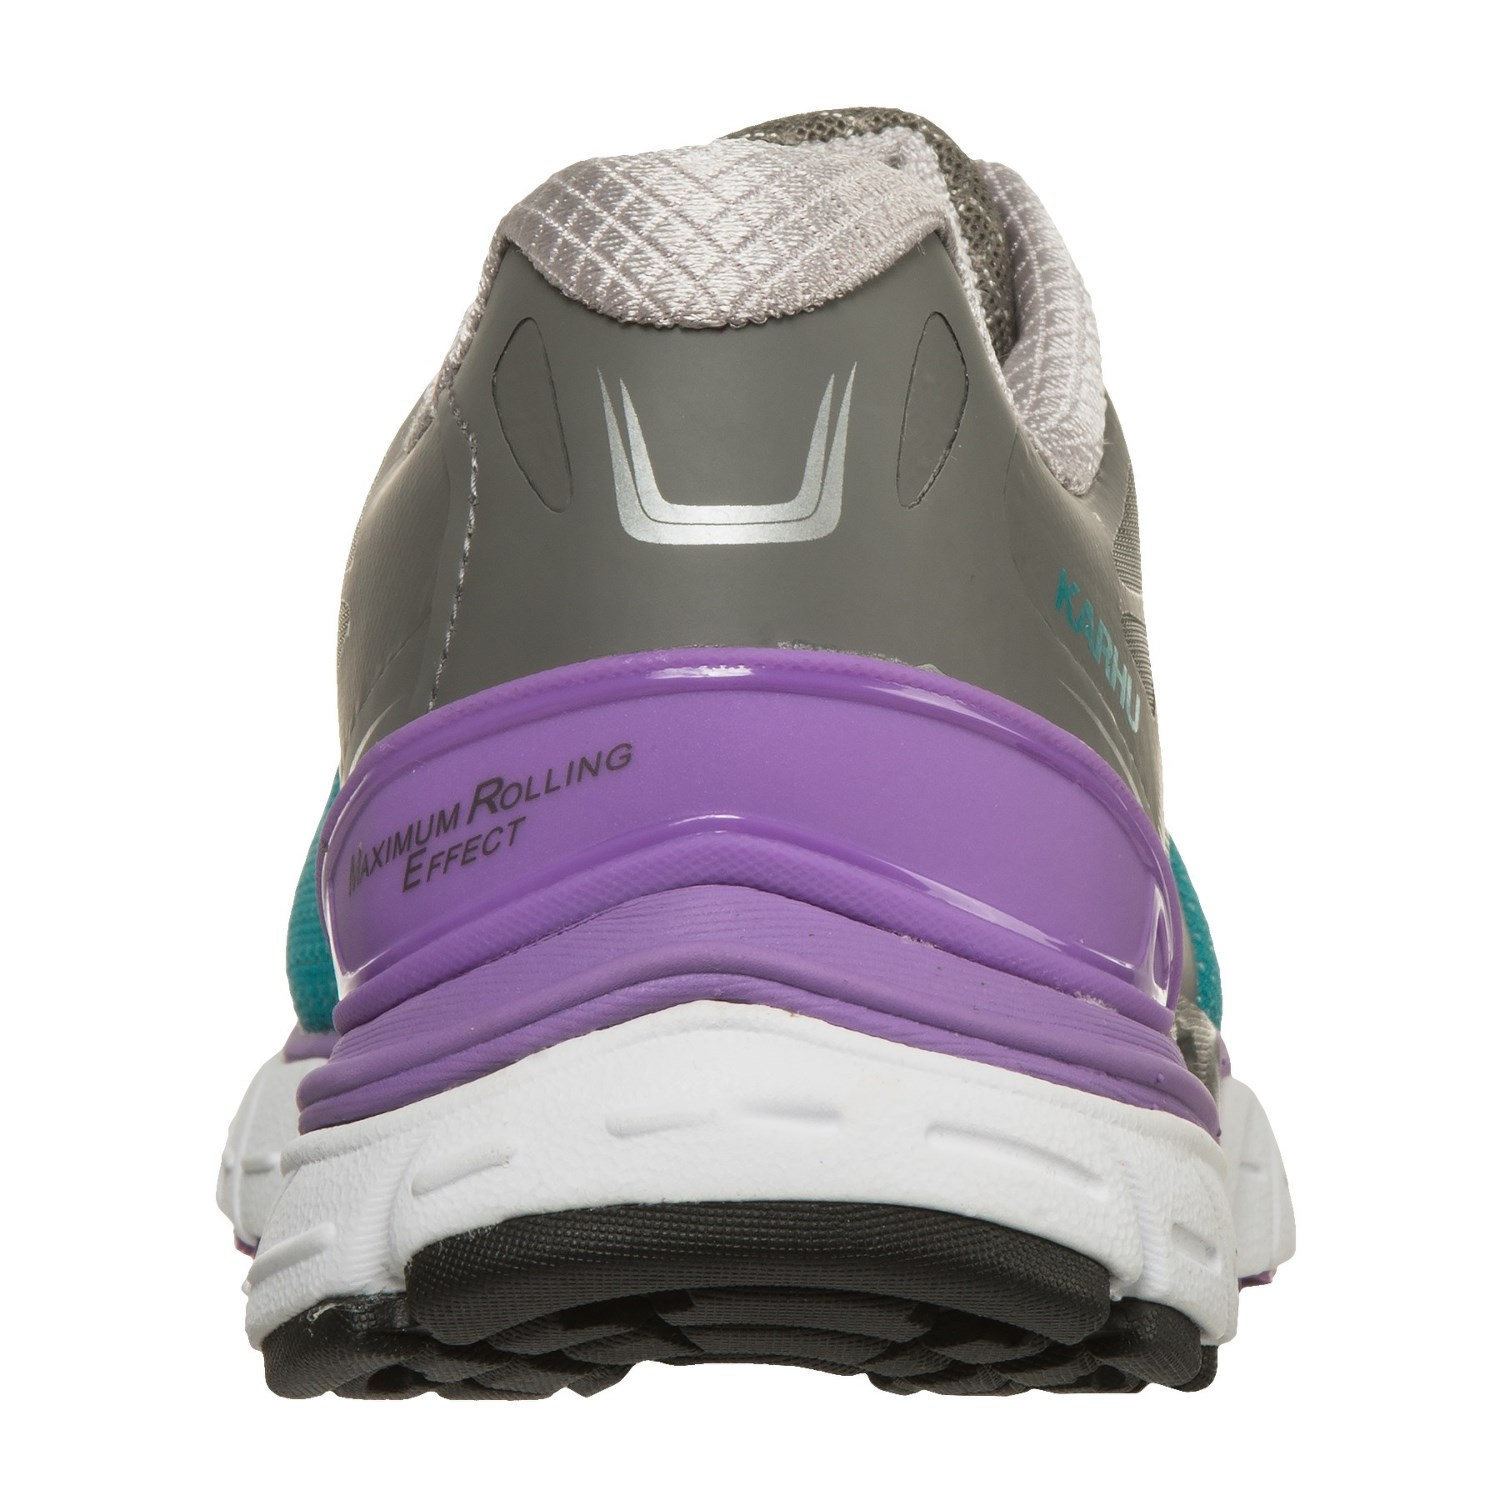 b3f654fb3a8175 Karhu Fast 6 MRE Running Shoes (For Women) - Save 84%